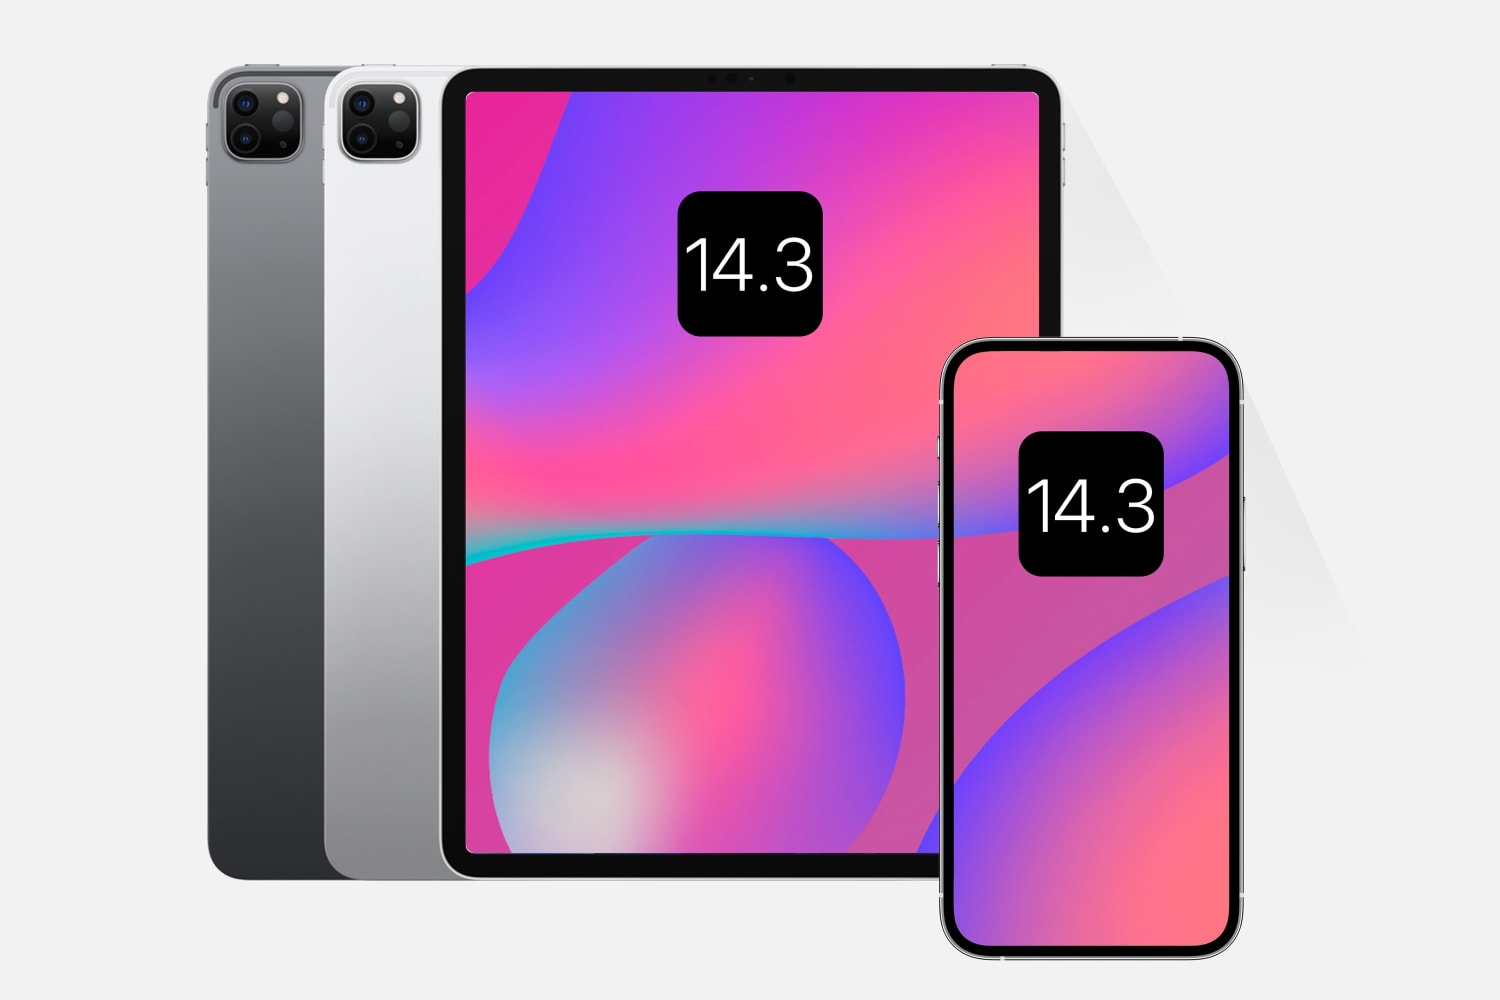 apple-releases-ios-14-3-and-ipados-14-3-betas-for-public-beta-testing-20201113-1